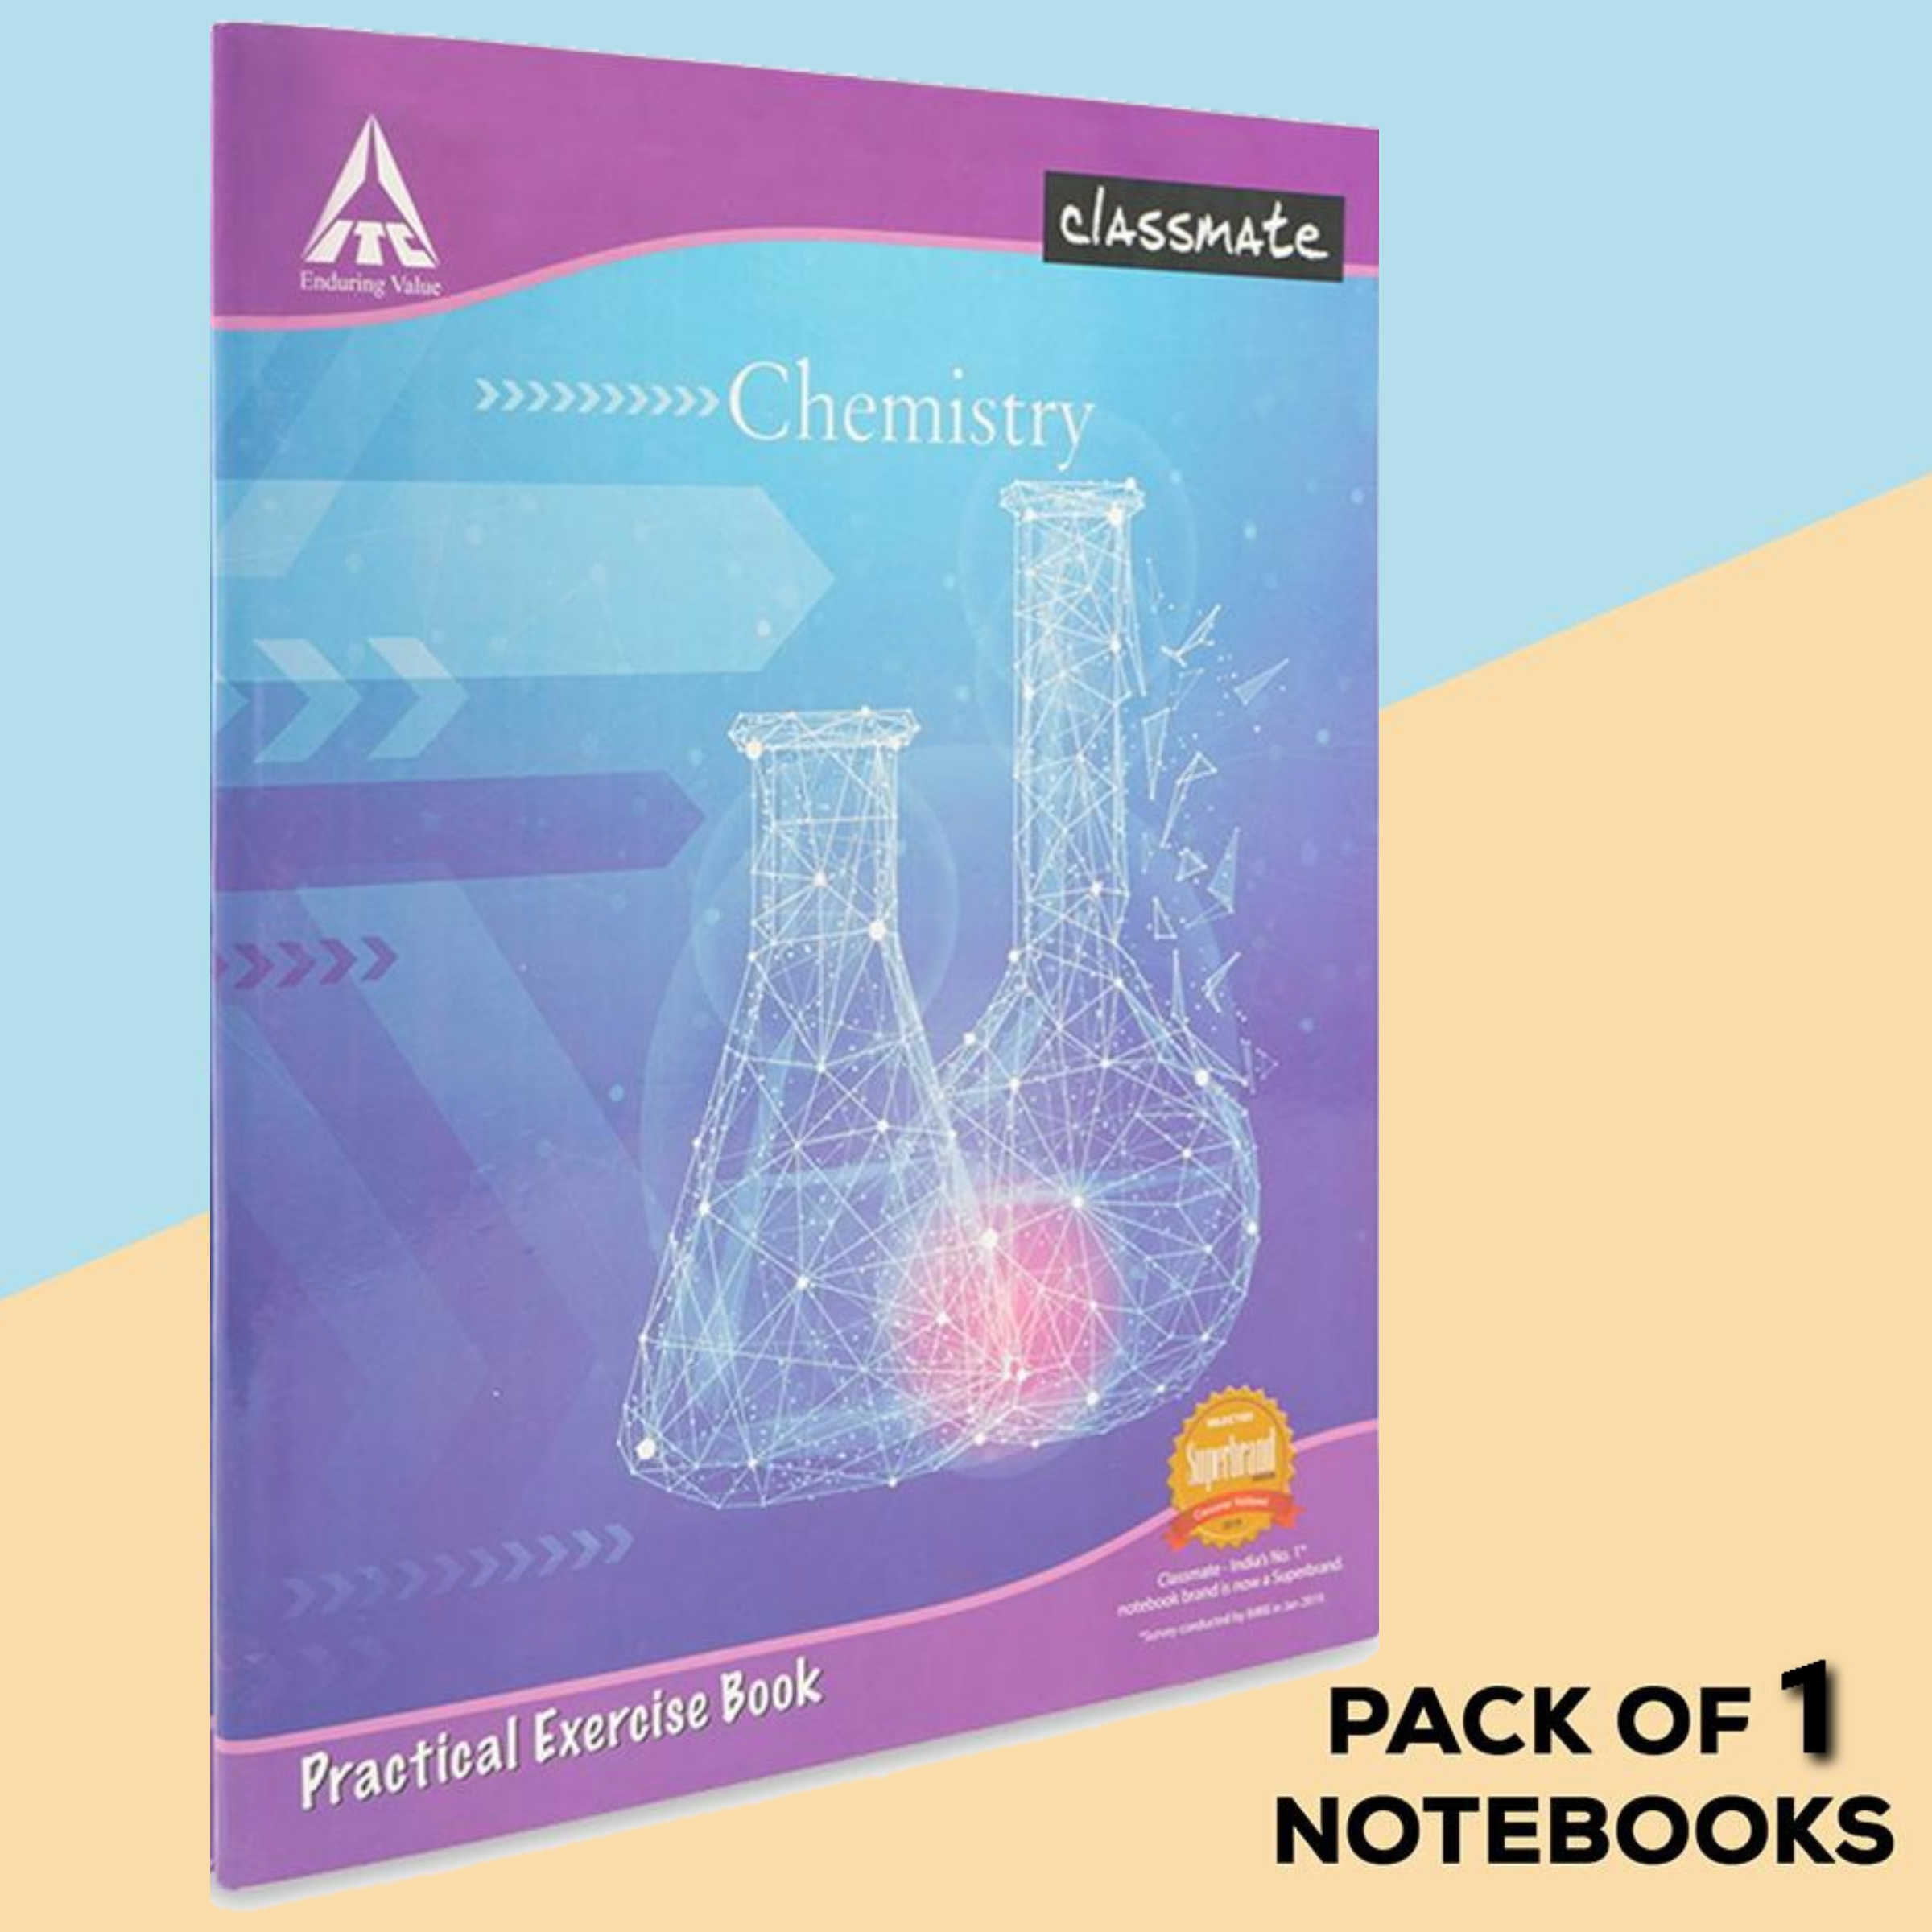 Classmate Chemistry Practical Notebook Hard Cover 108 Pages Single Line/ Blank 26.5X21.5 cm Pack of 1